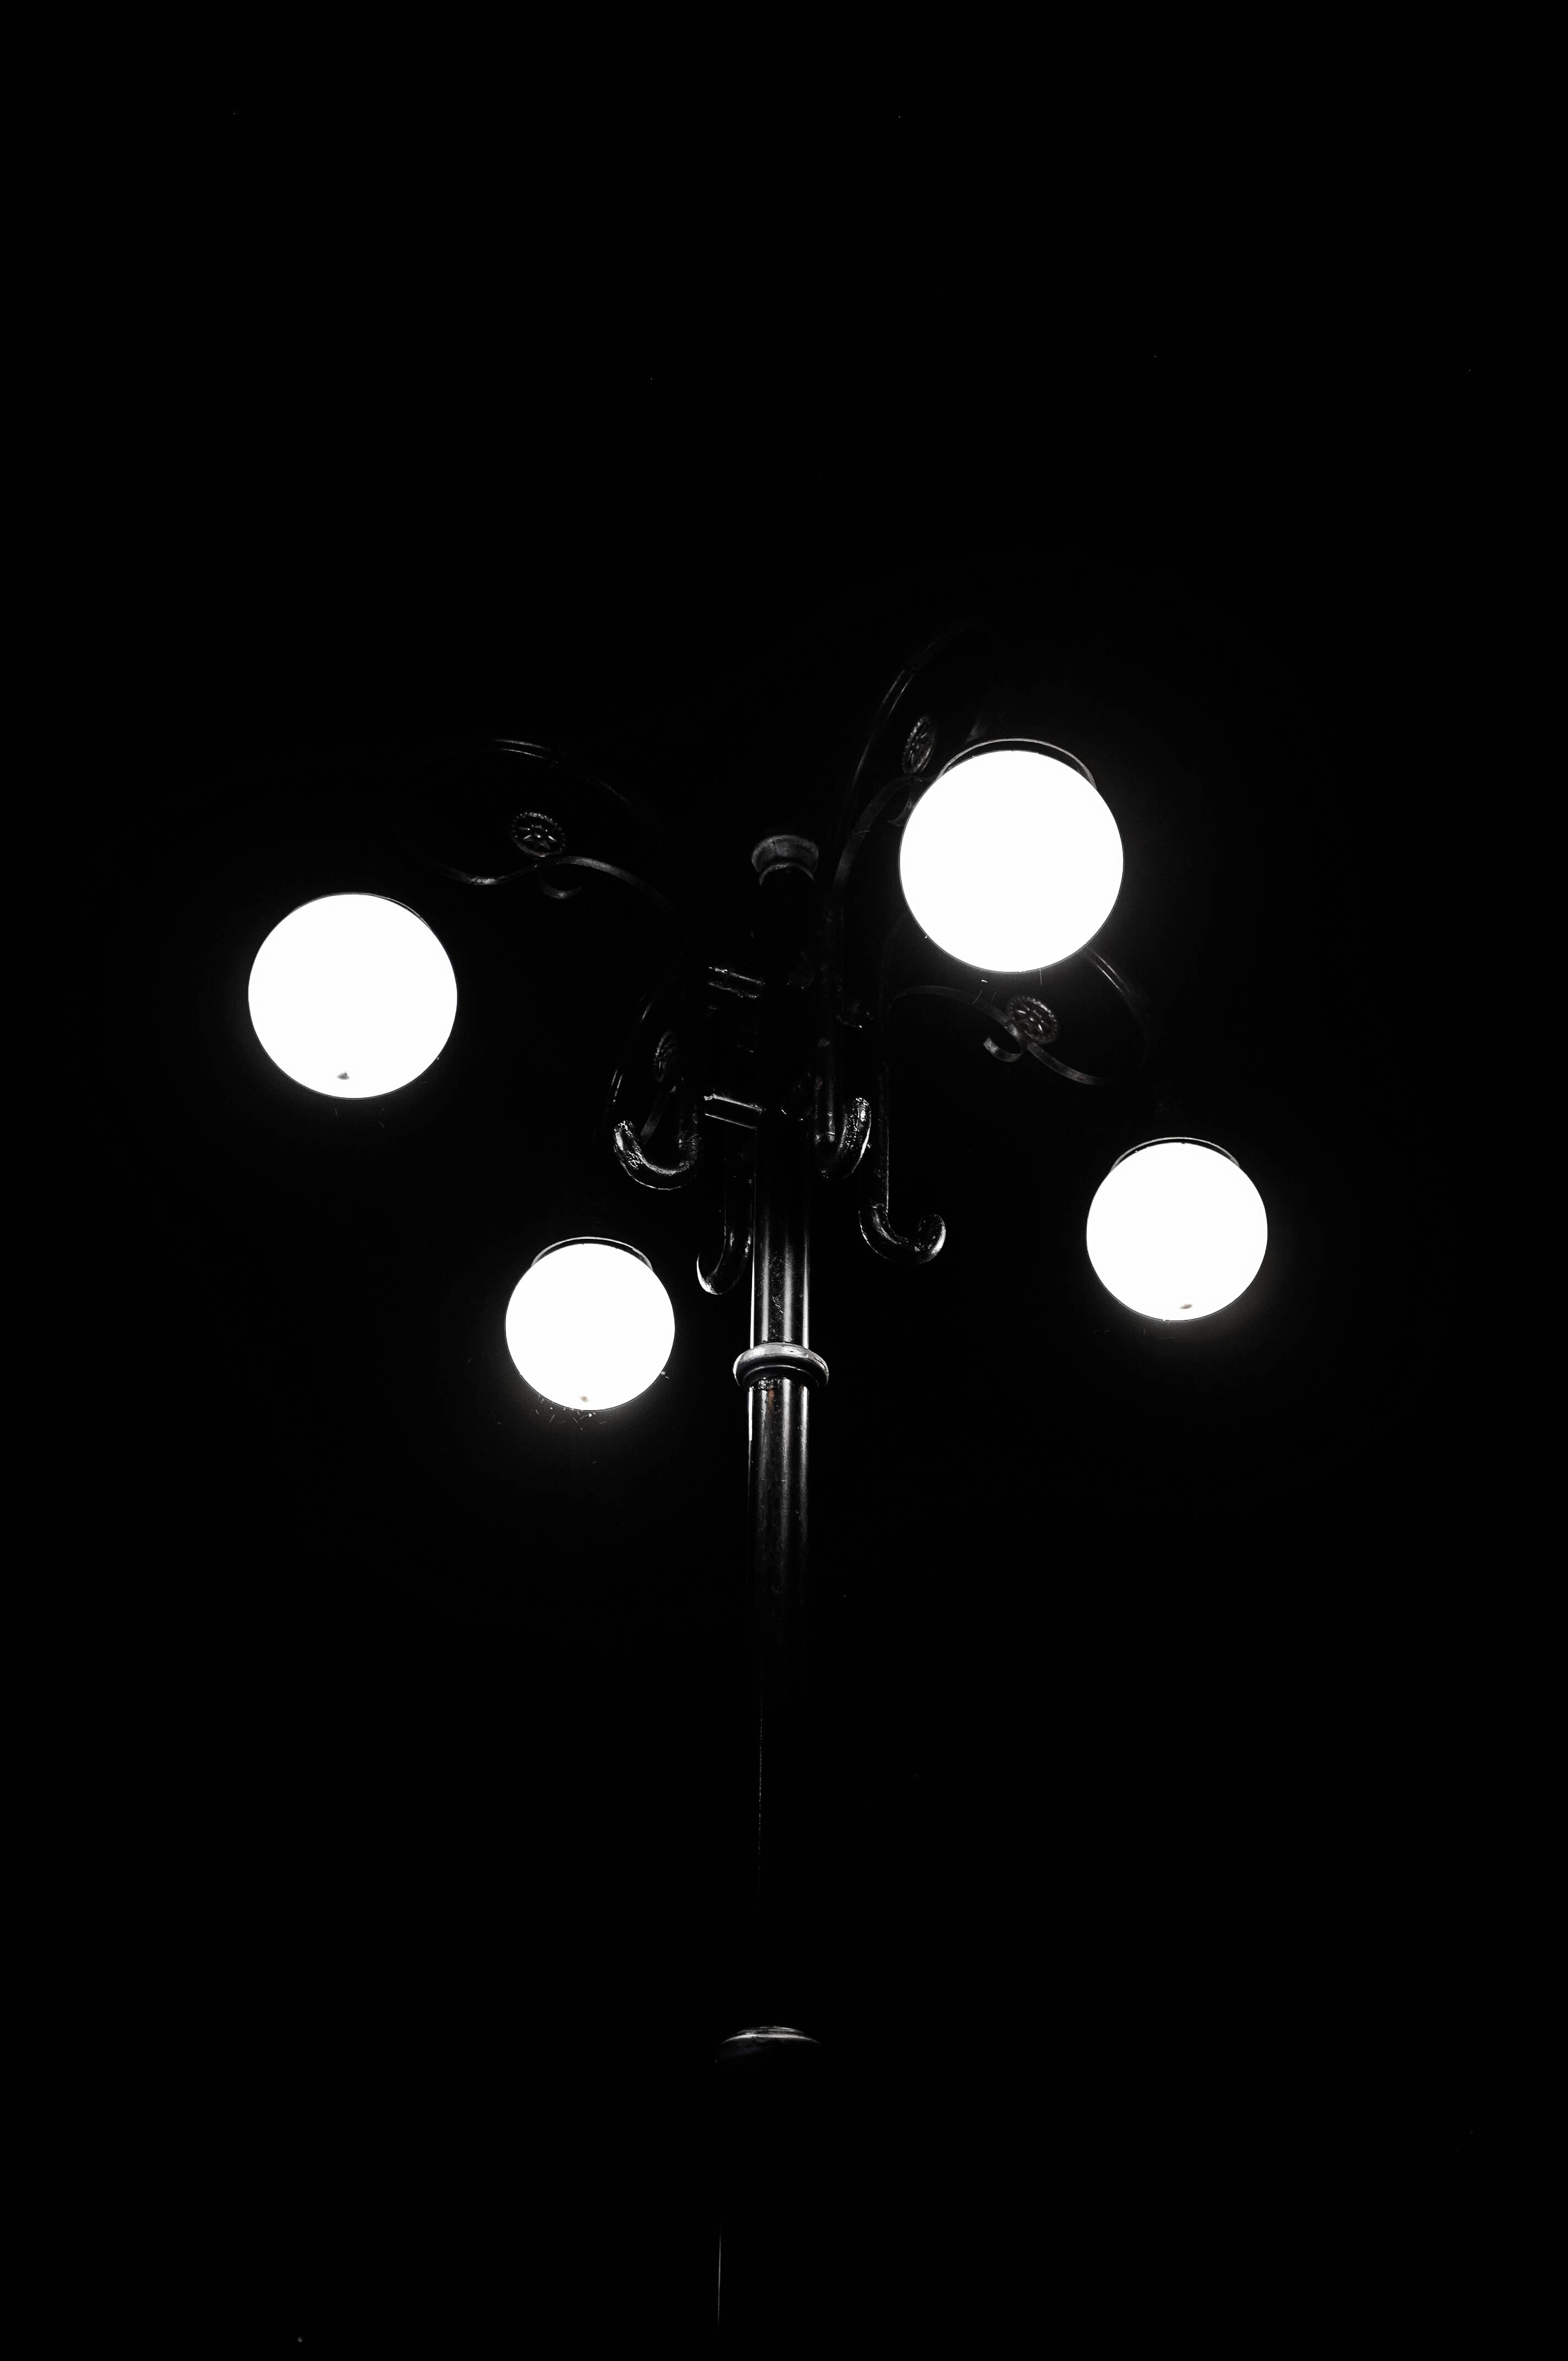 118059 Screensavers and Wallpapers Lamp for phone. Download Night, Dark, Lamp, Lantern, Glow, Lamppost, Lantern Table pictures for free